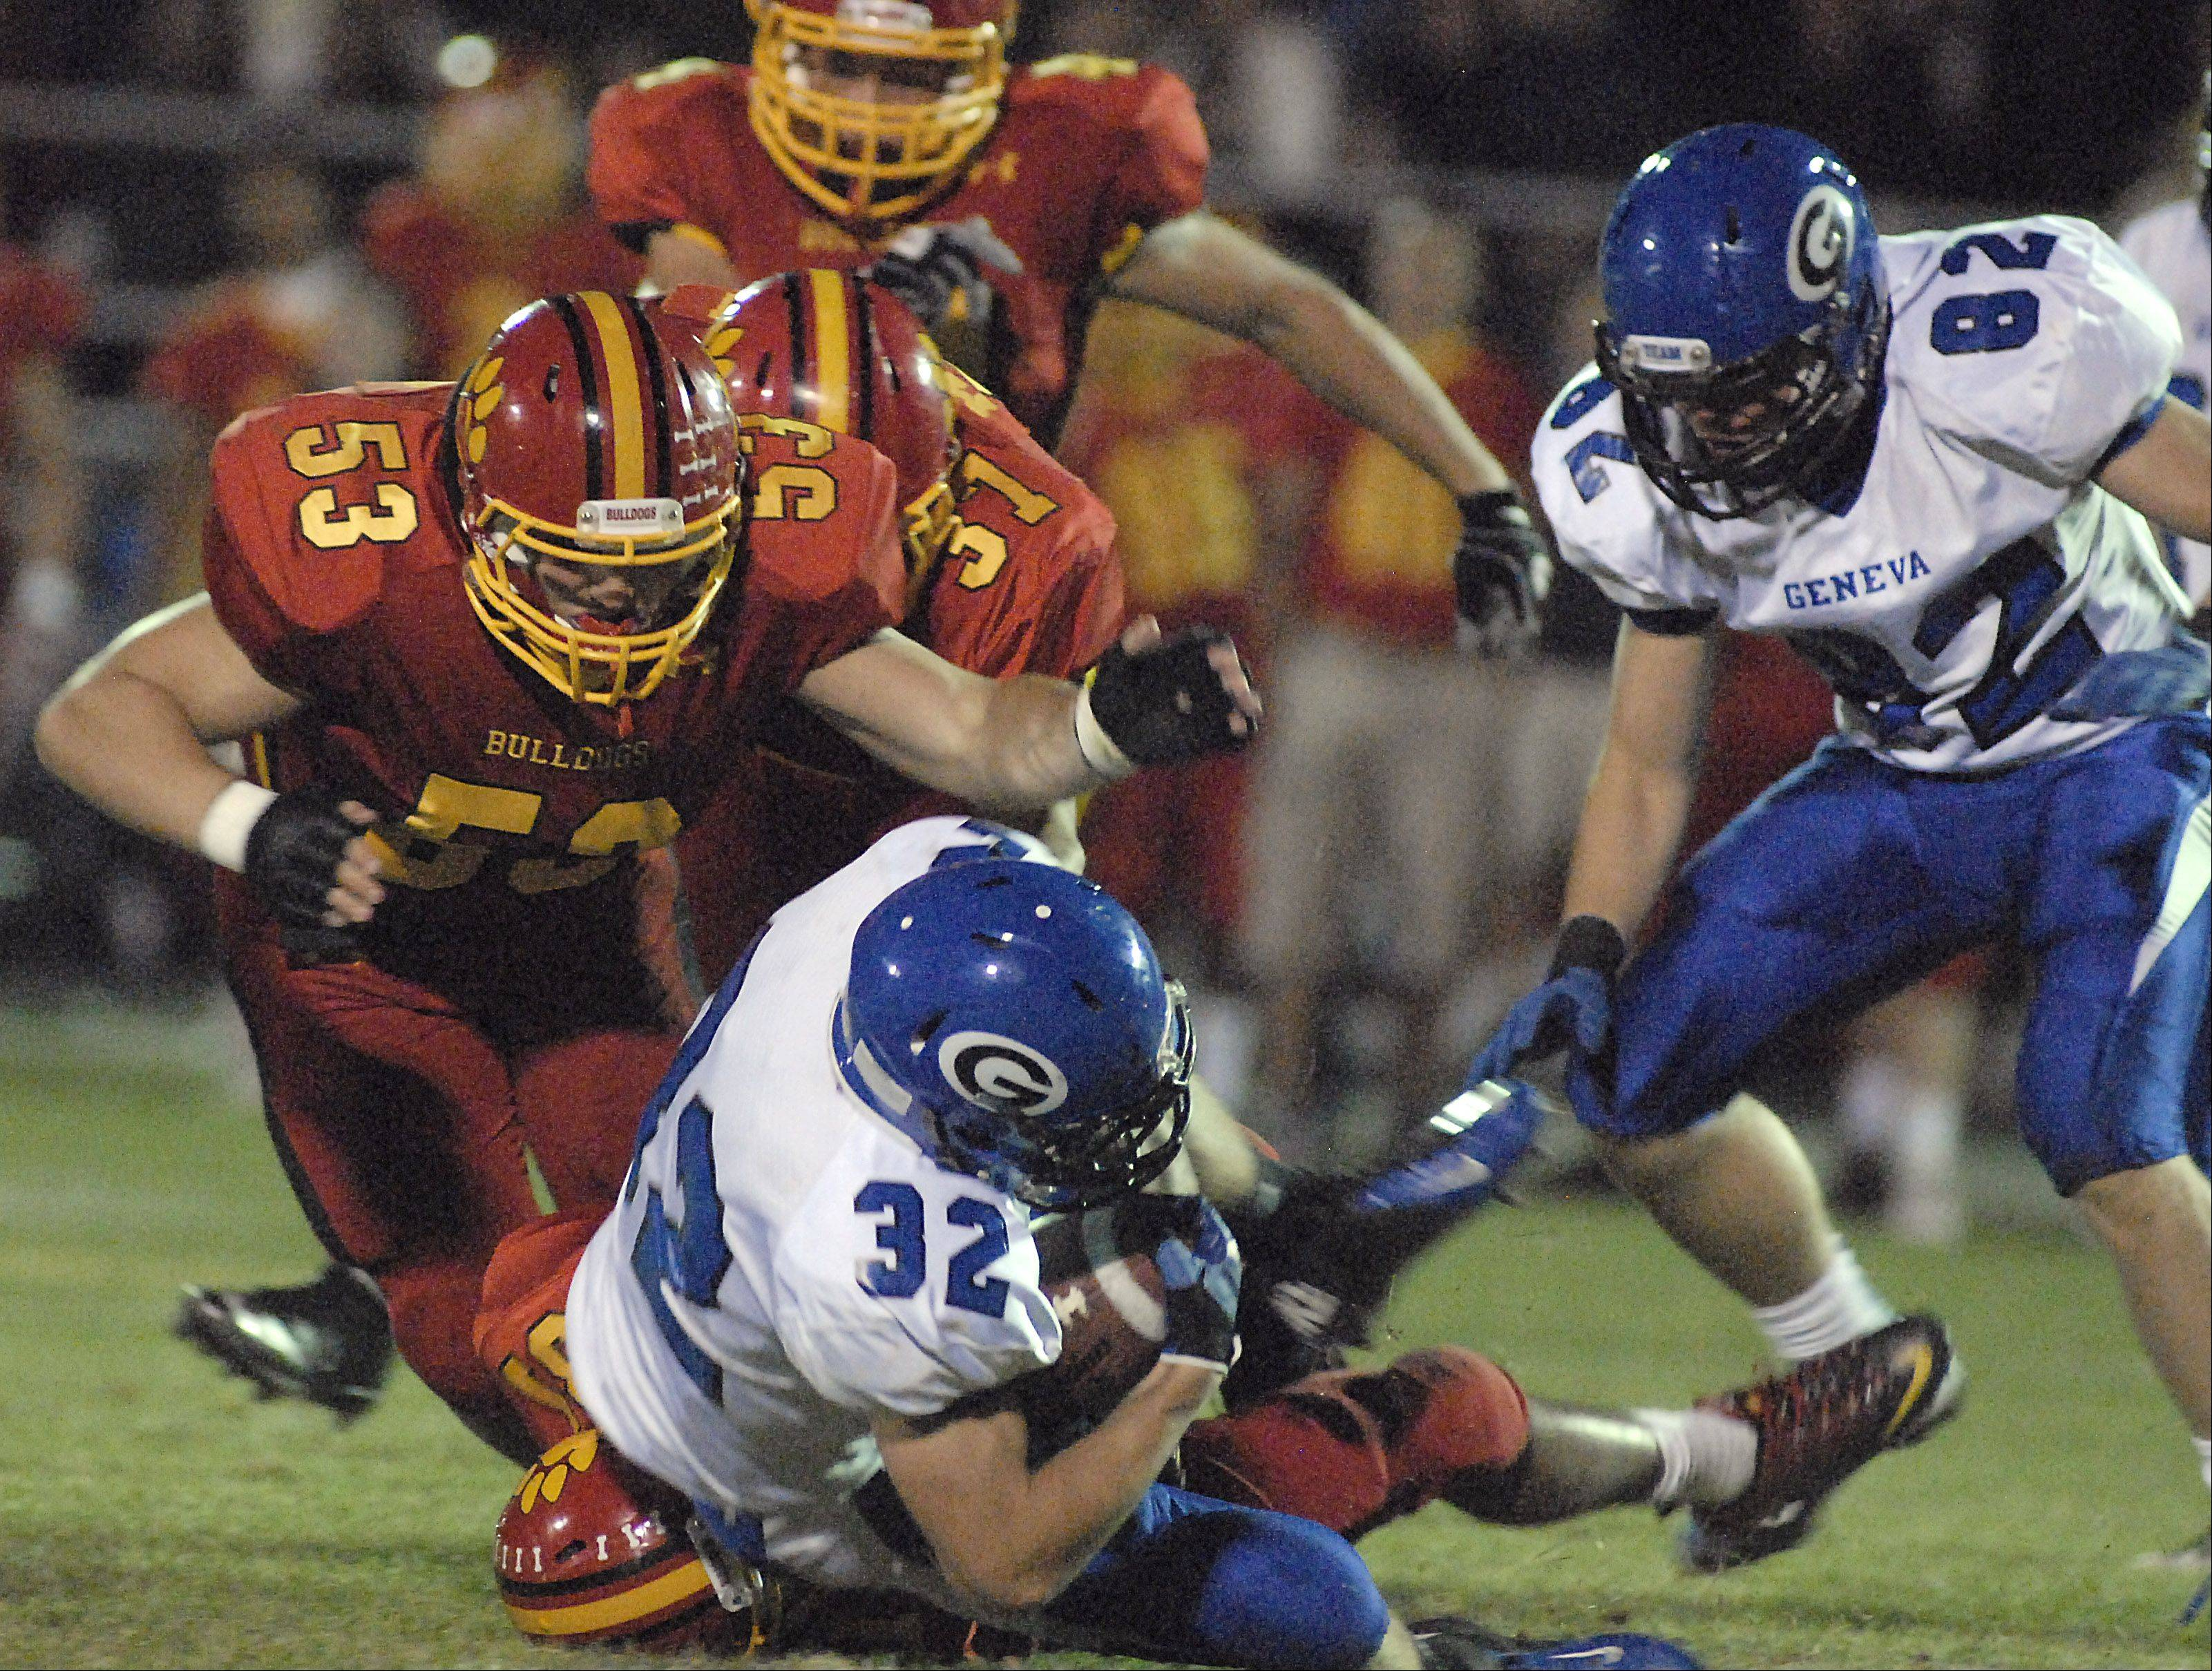 Geneva's Travis Champer is taken down by Batavia's Vincent Cerezo and Michael Gates in the second quarter.